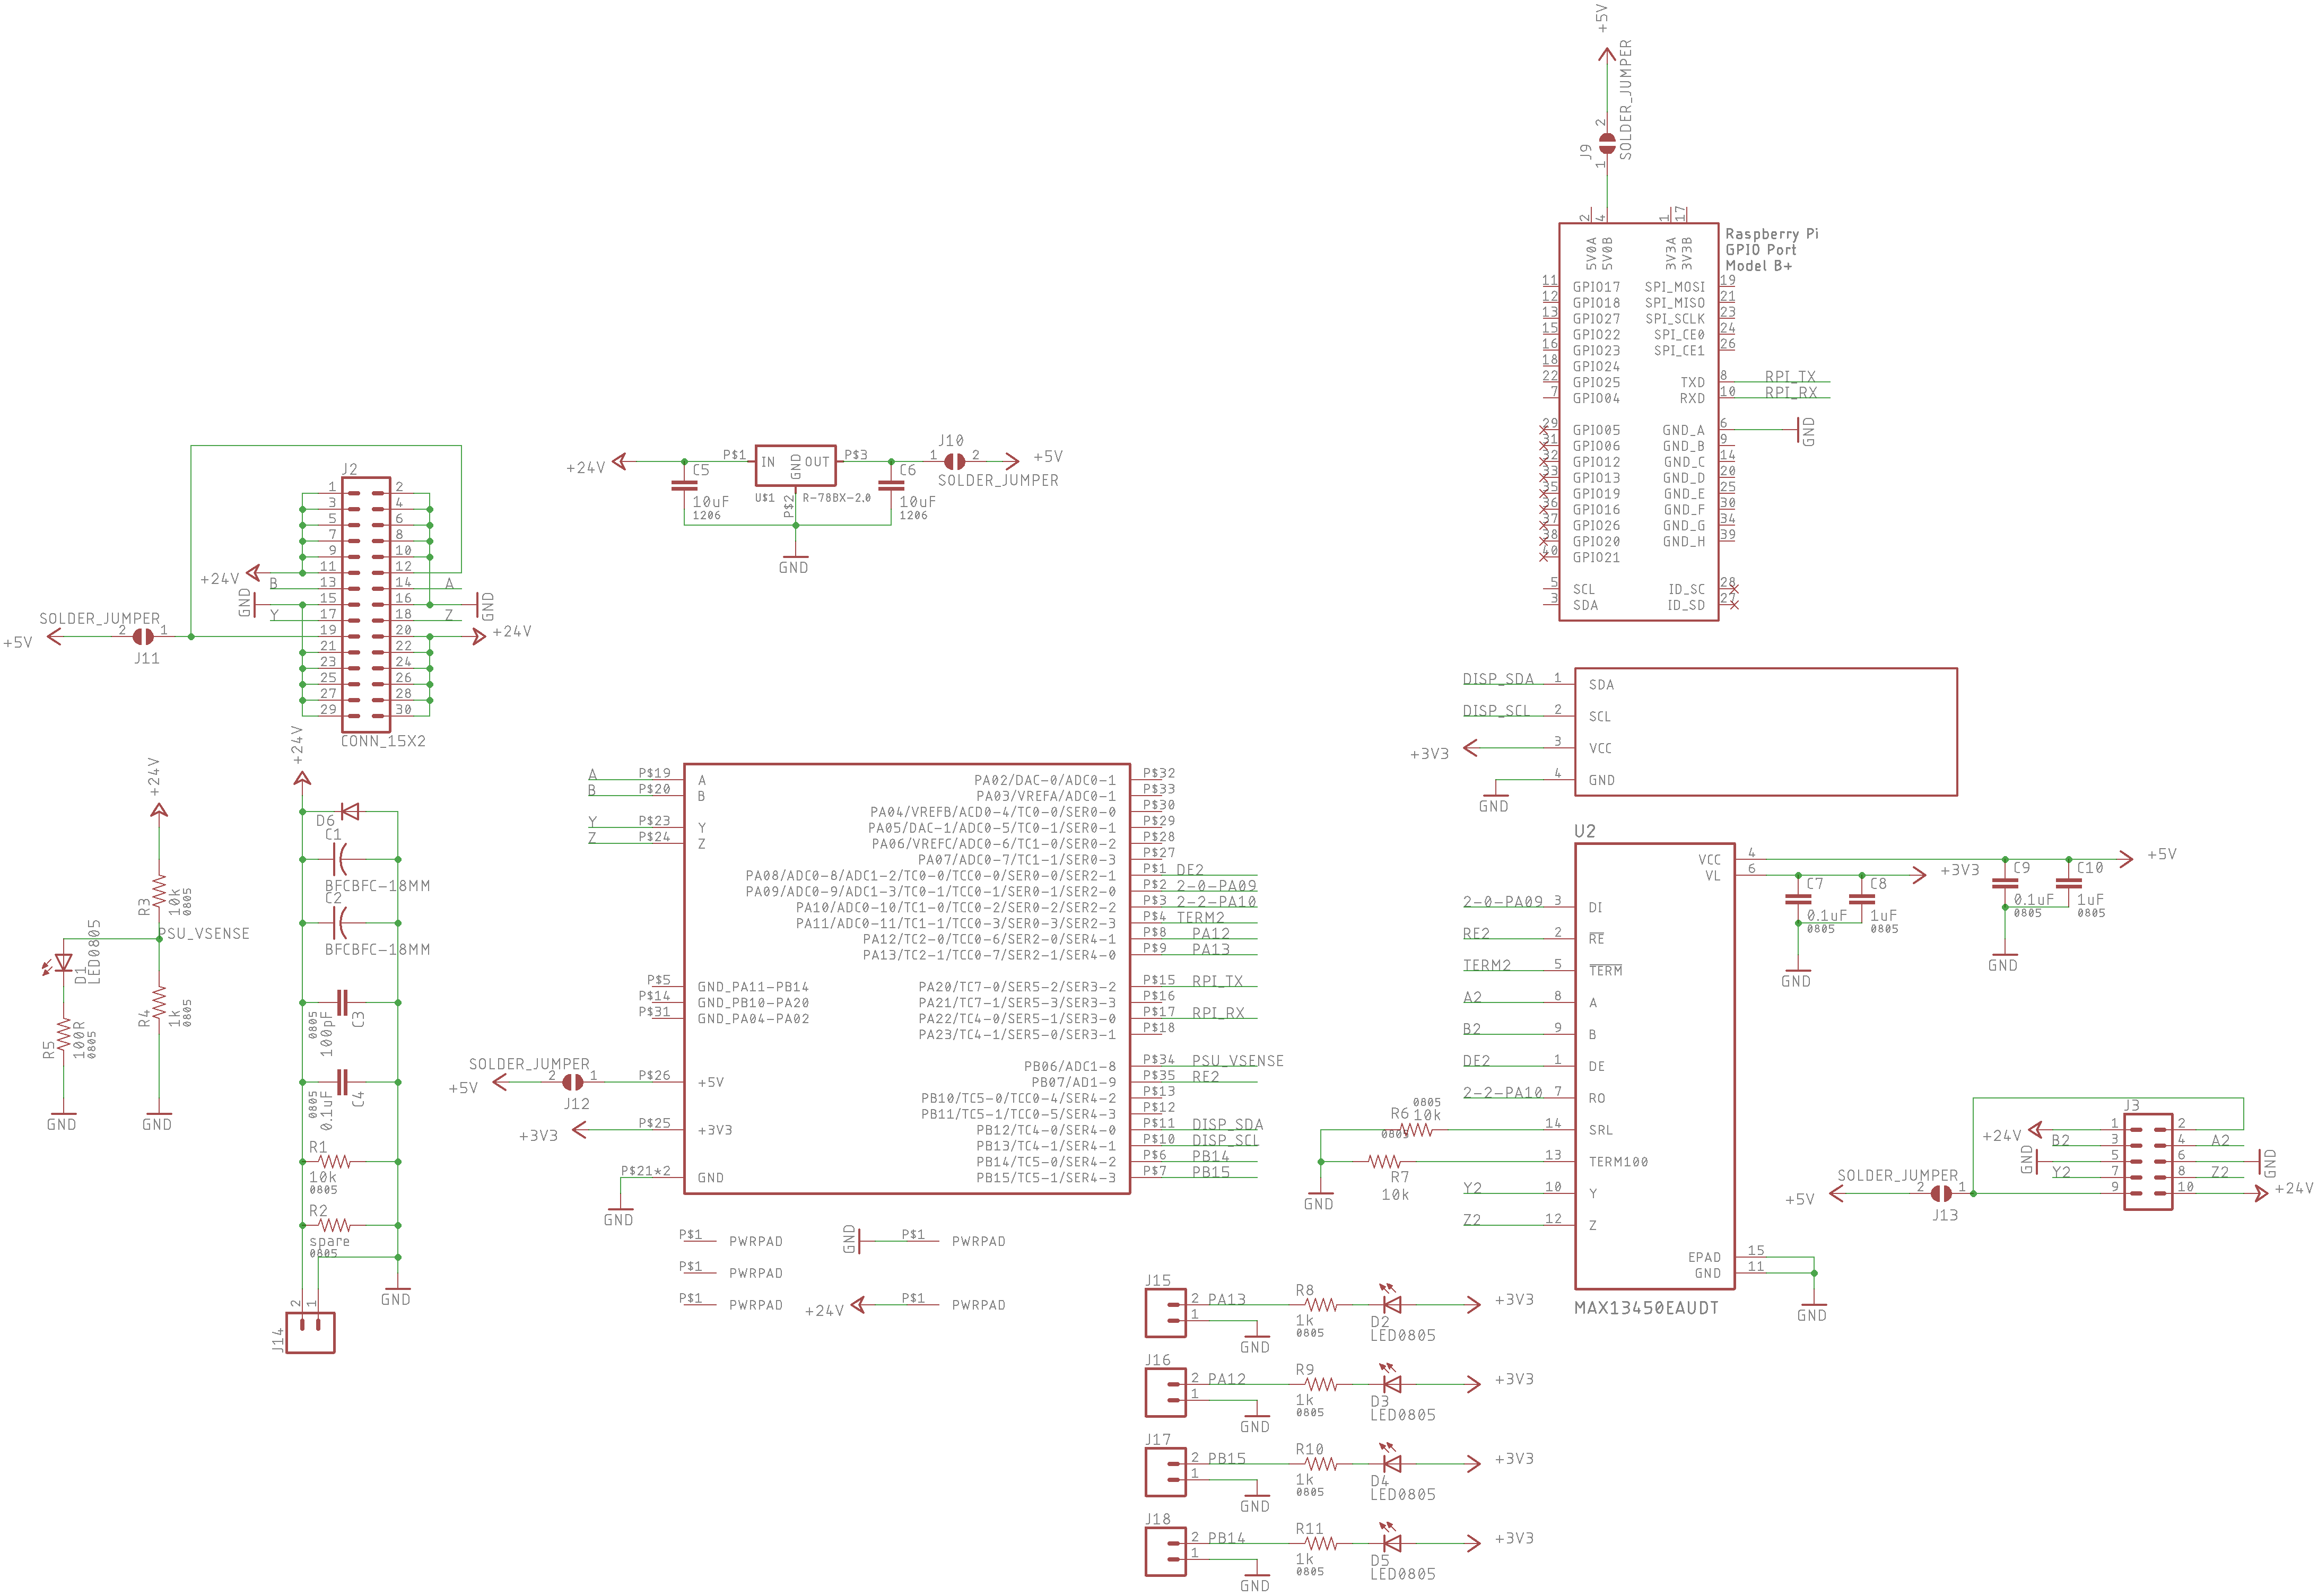 log/2020-08-03_schematic.png